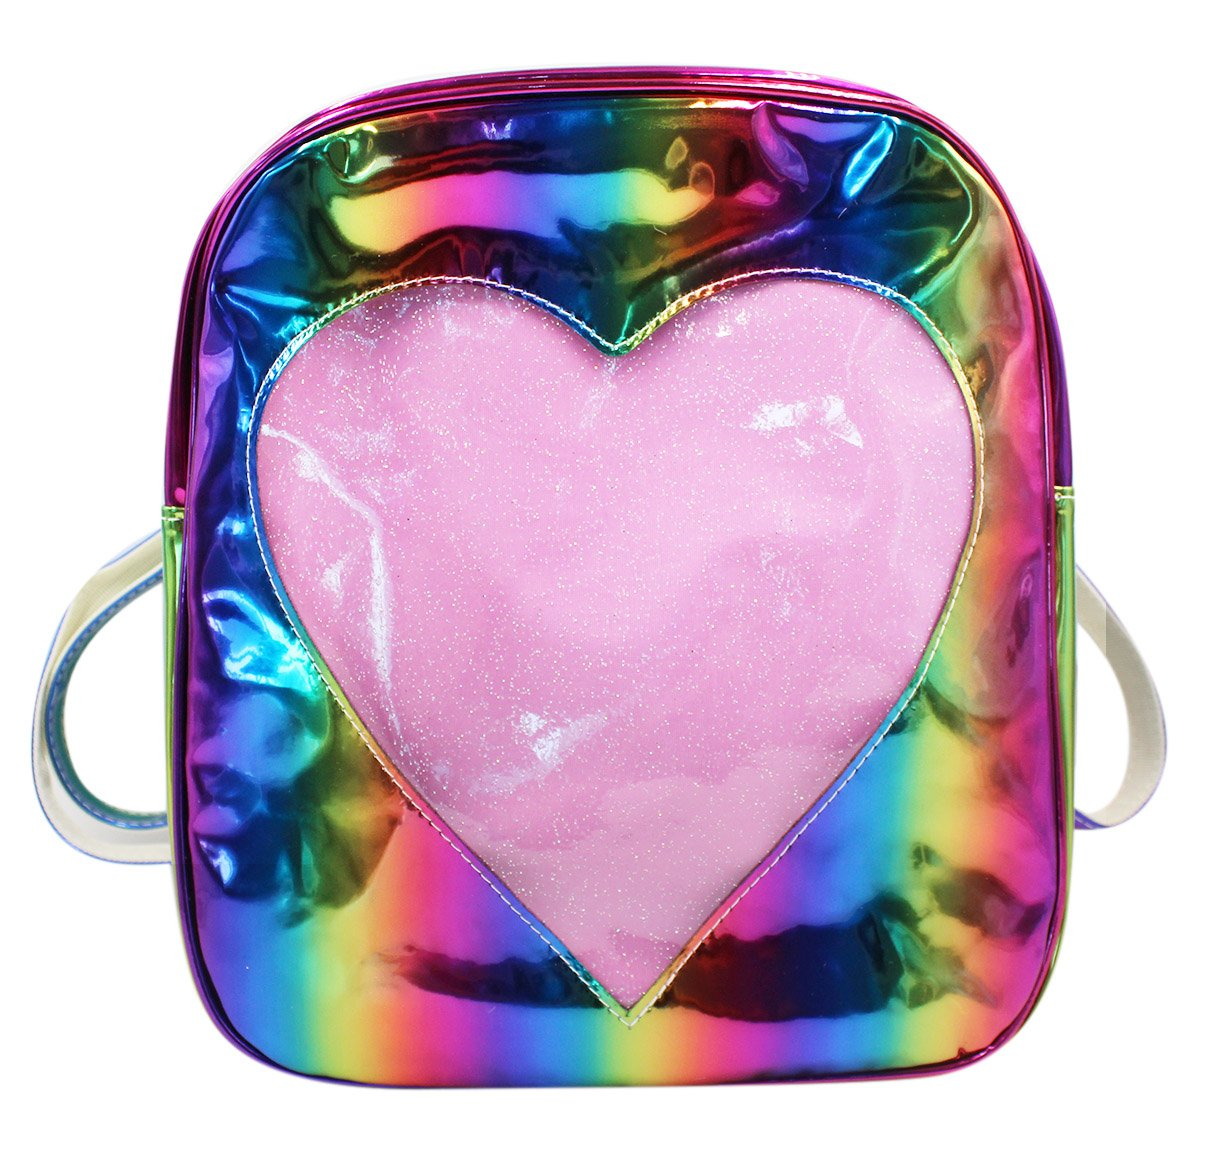 Holographic Backpack Rainbow Shoulder Bag Satchel with Cute Heart Print